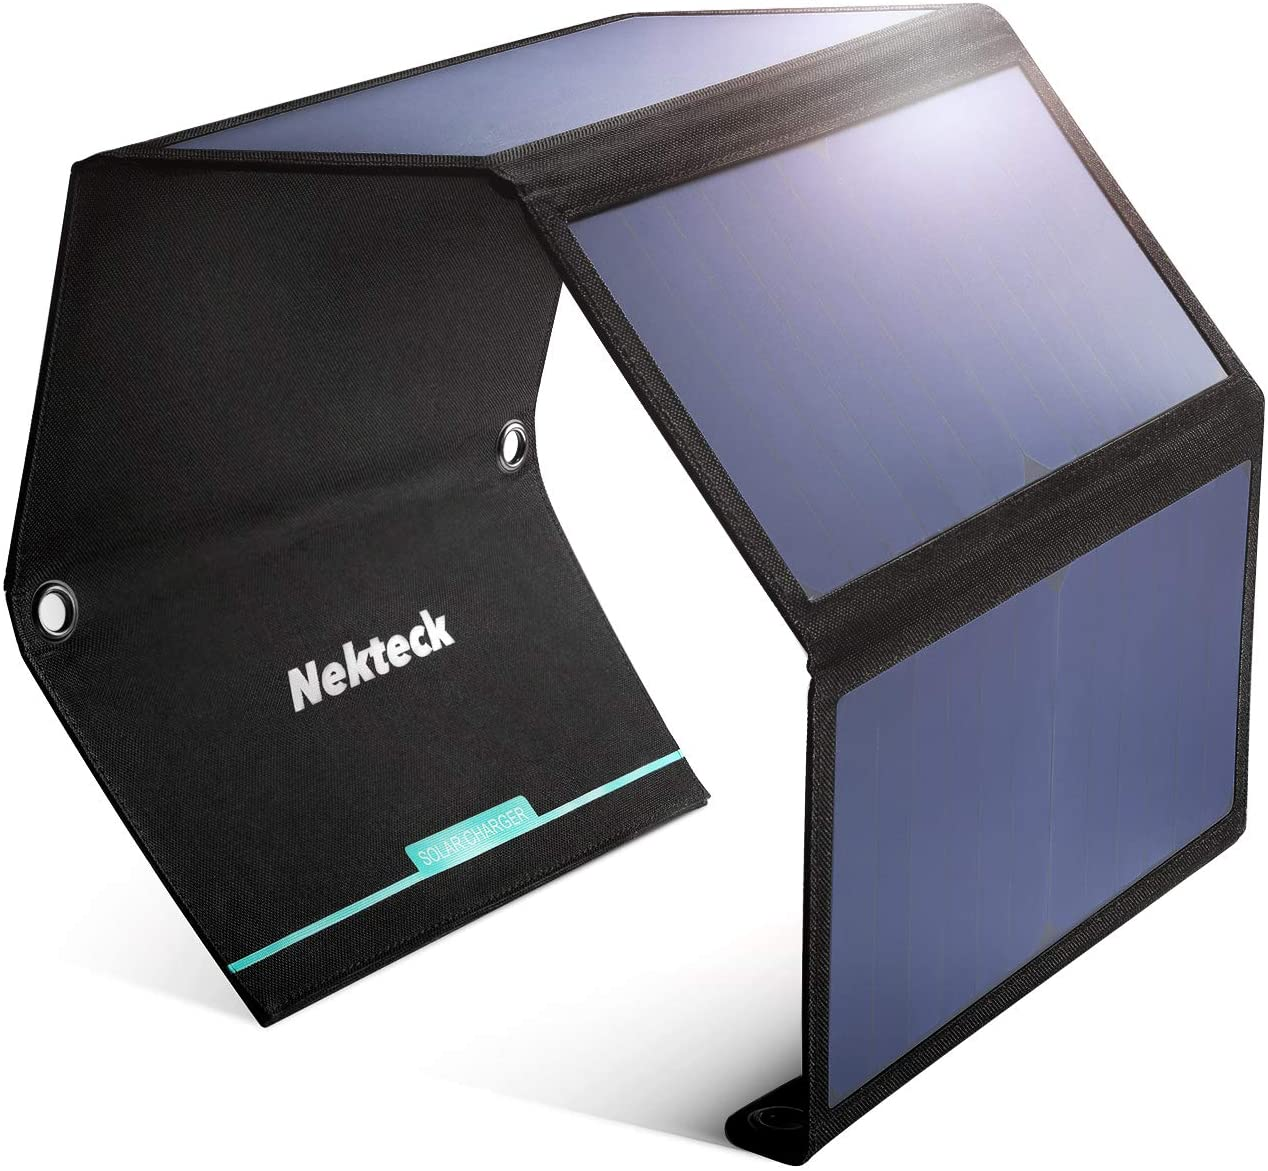 Nekteck 28W Portable Solar Panel Charger, Waterproof Camping Gear Solar Powered Charger with 2 USB Port for iPhone X/8 Plus, Samsung Galaxy s9/s8,iPad, Tablet and Any USB Devices